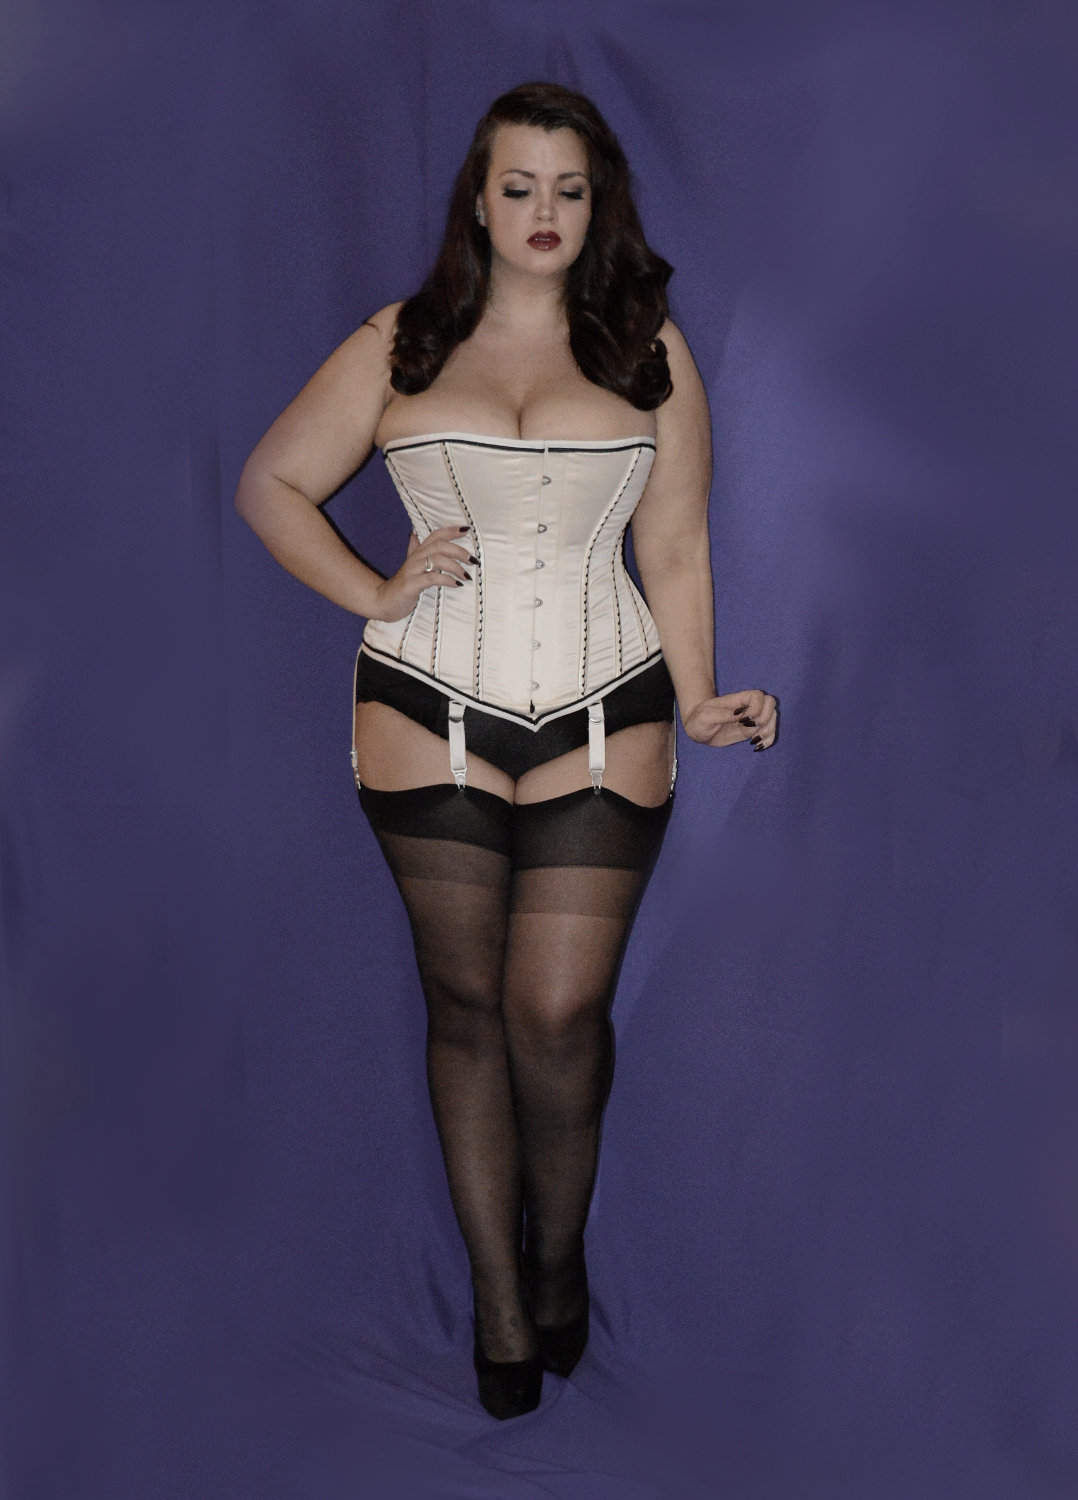 Big tit girl wearing corset